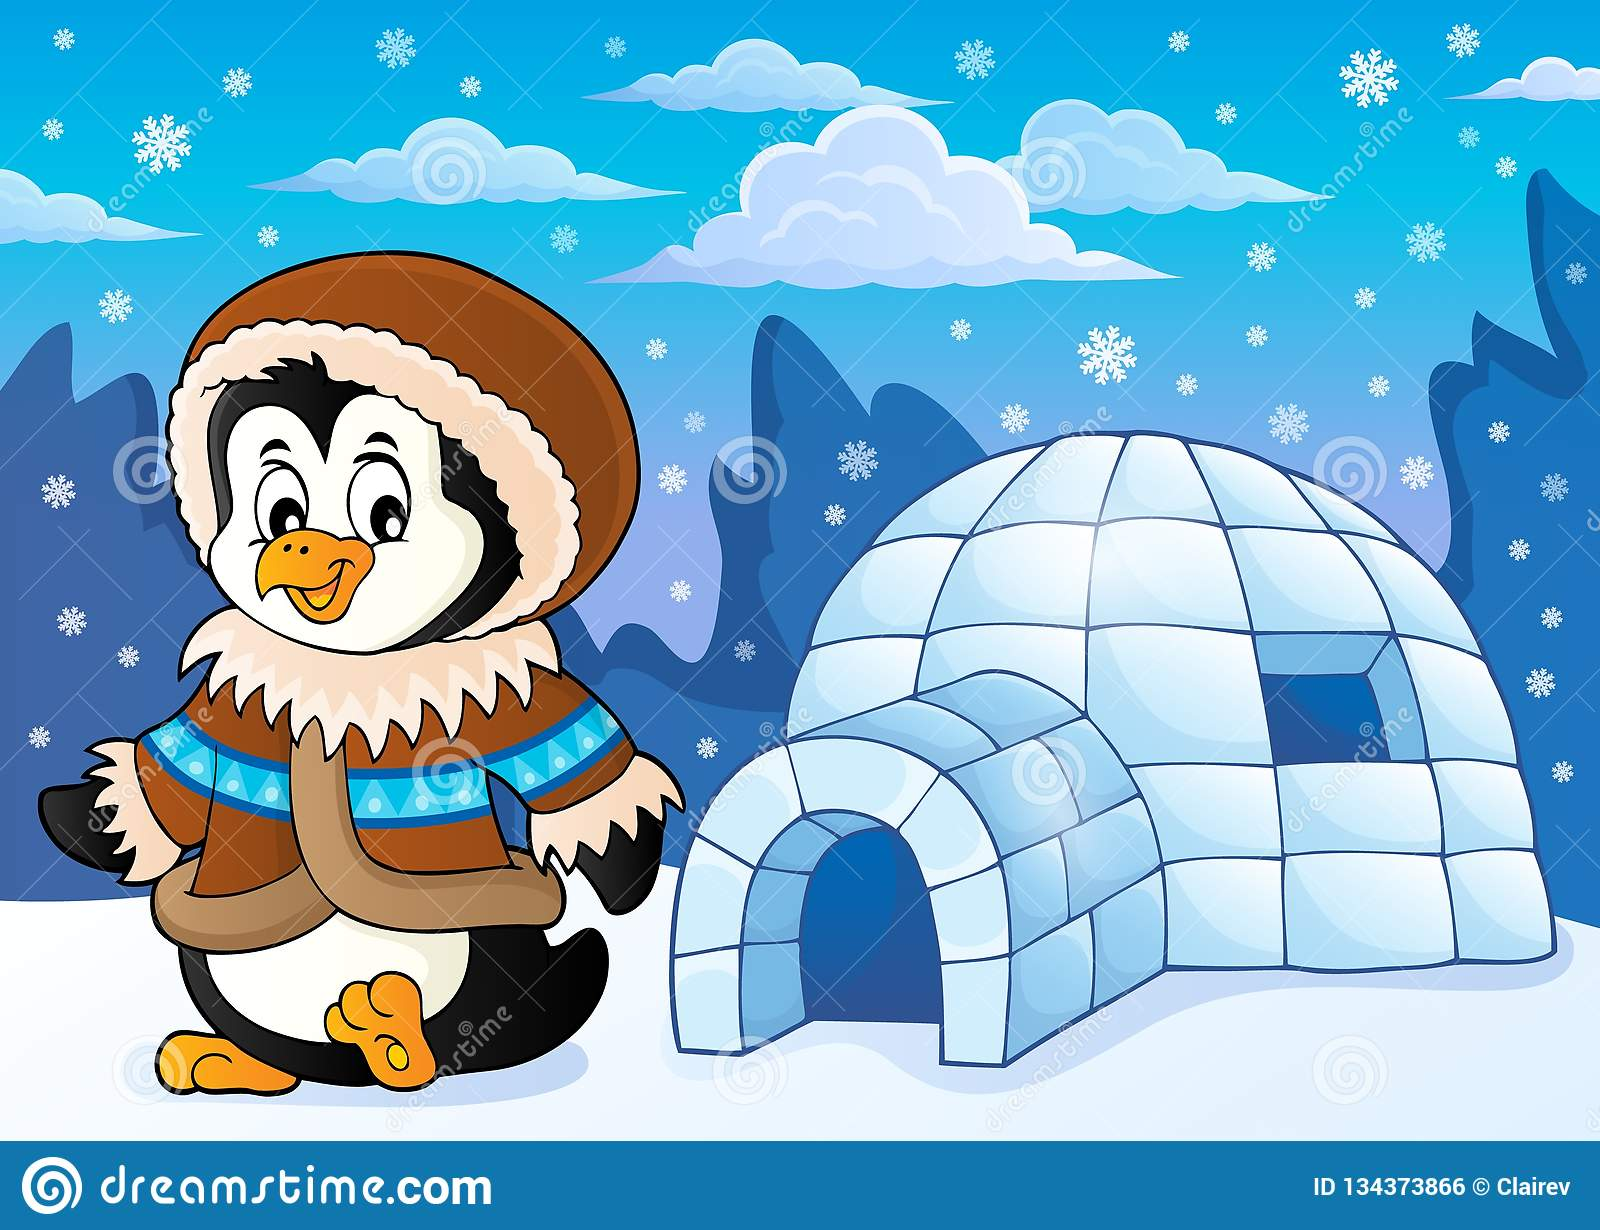 63be9eb41bfe Penguin in winter clothing theme 2 - eps10 vector illustration. More  similar stock illustrations